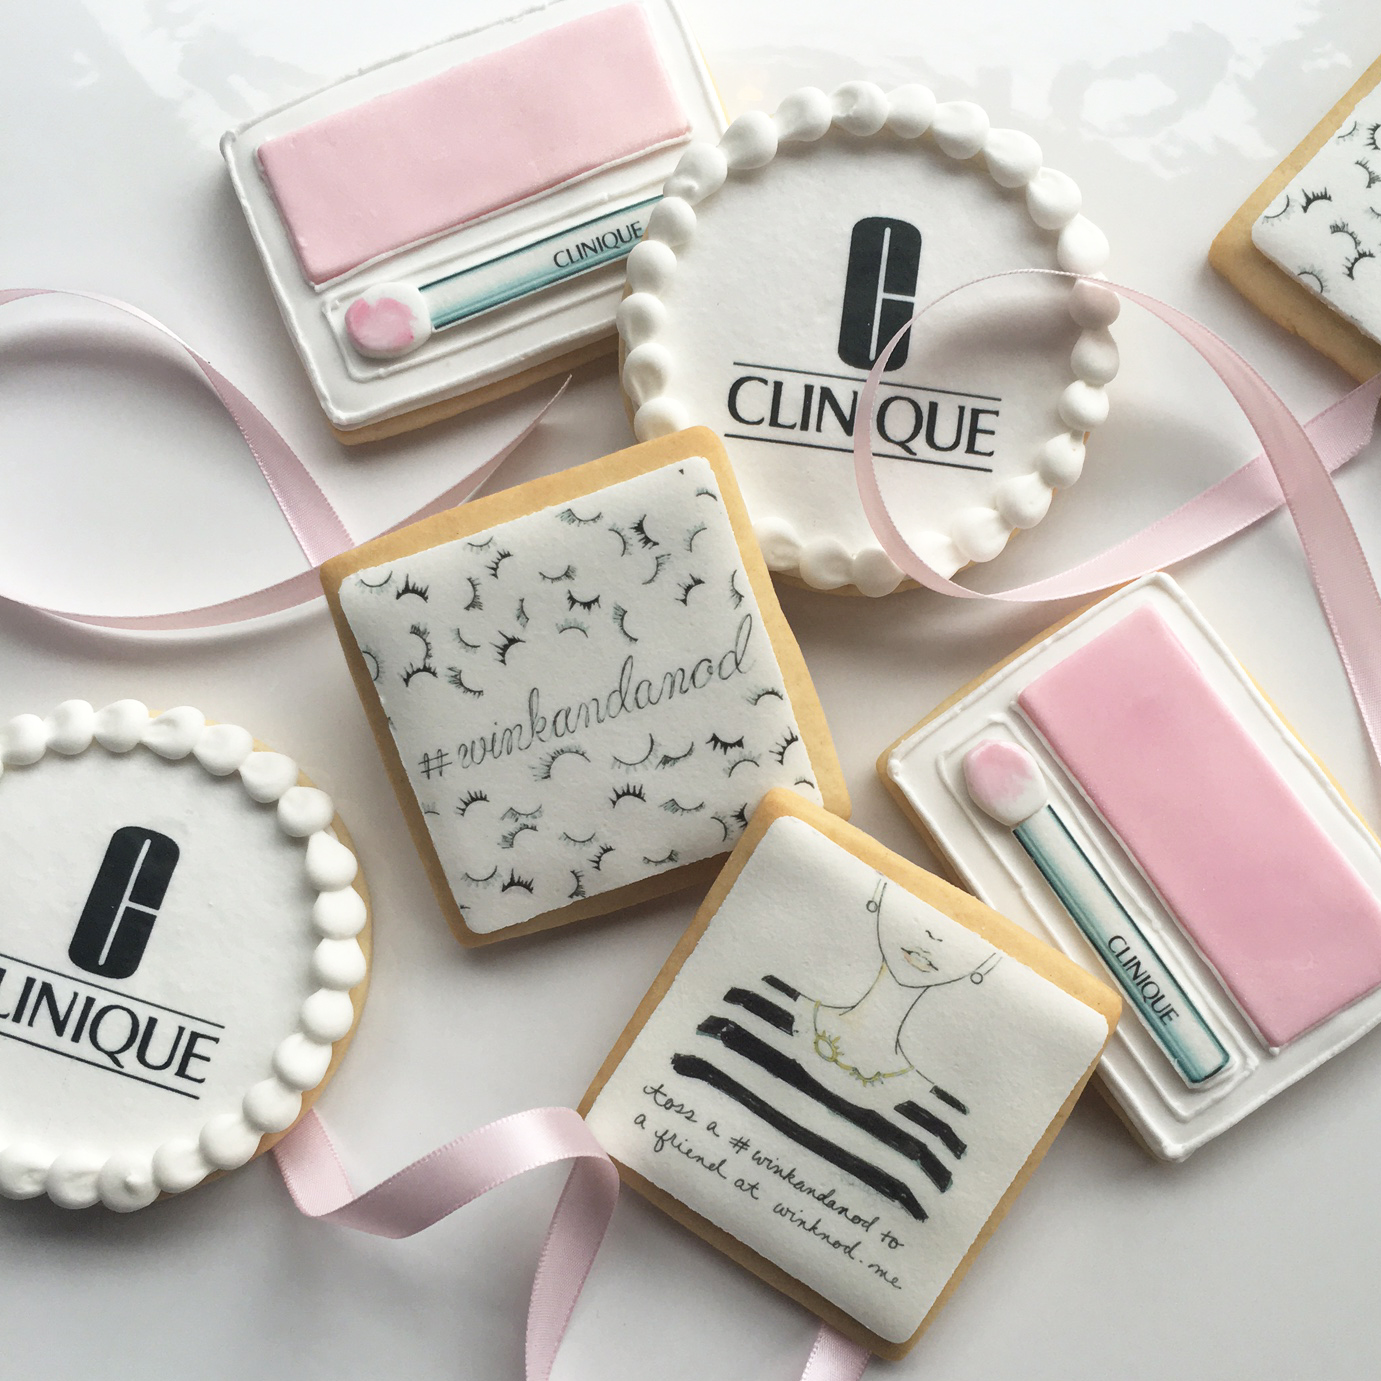 clinique-winks-whipped-bakeshop-1